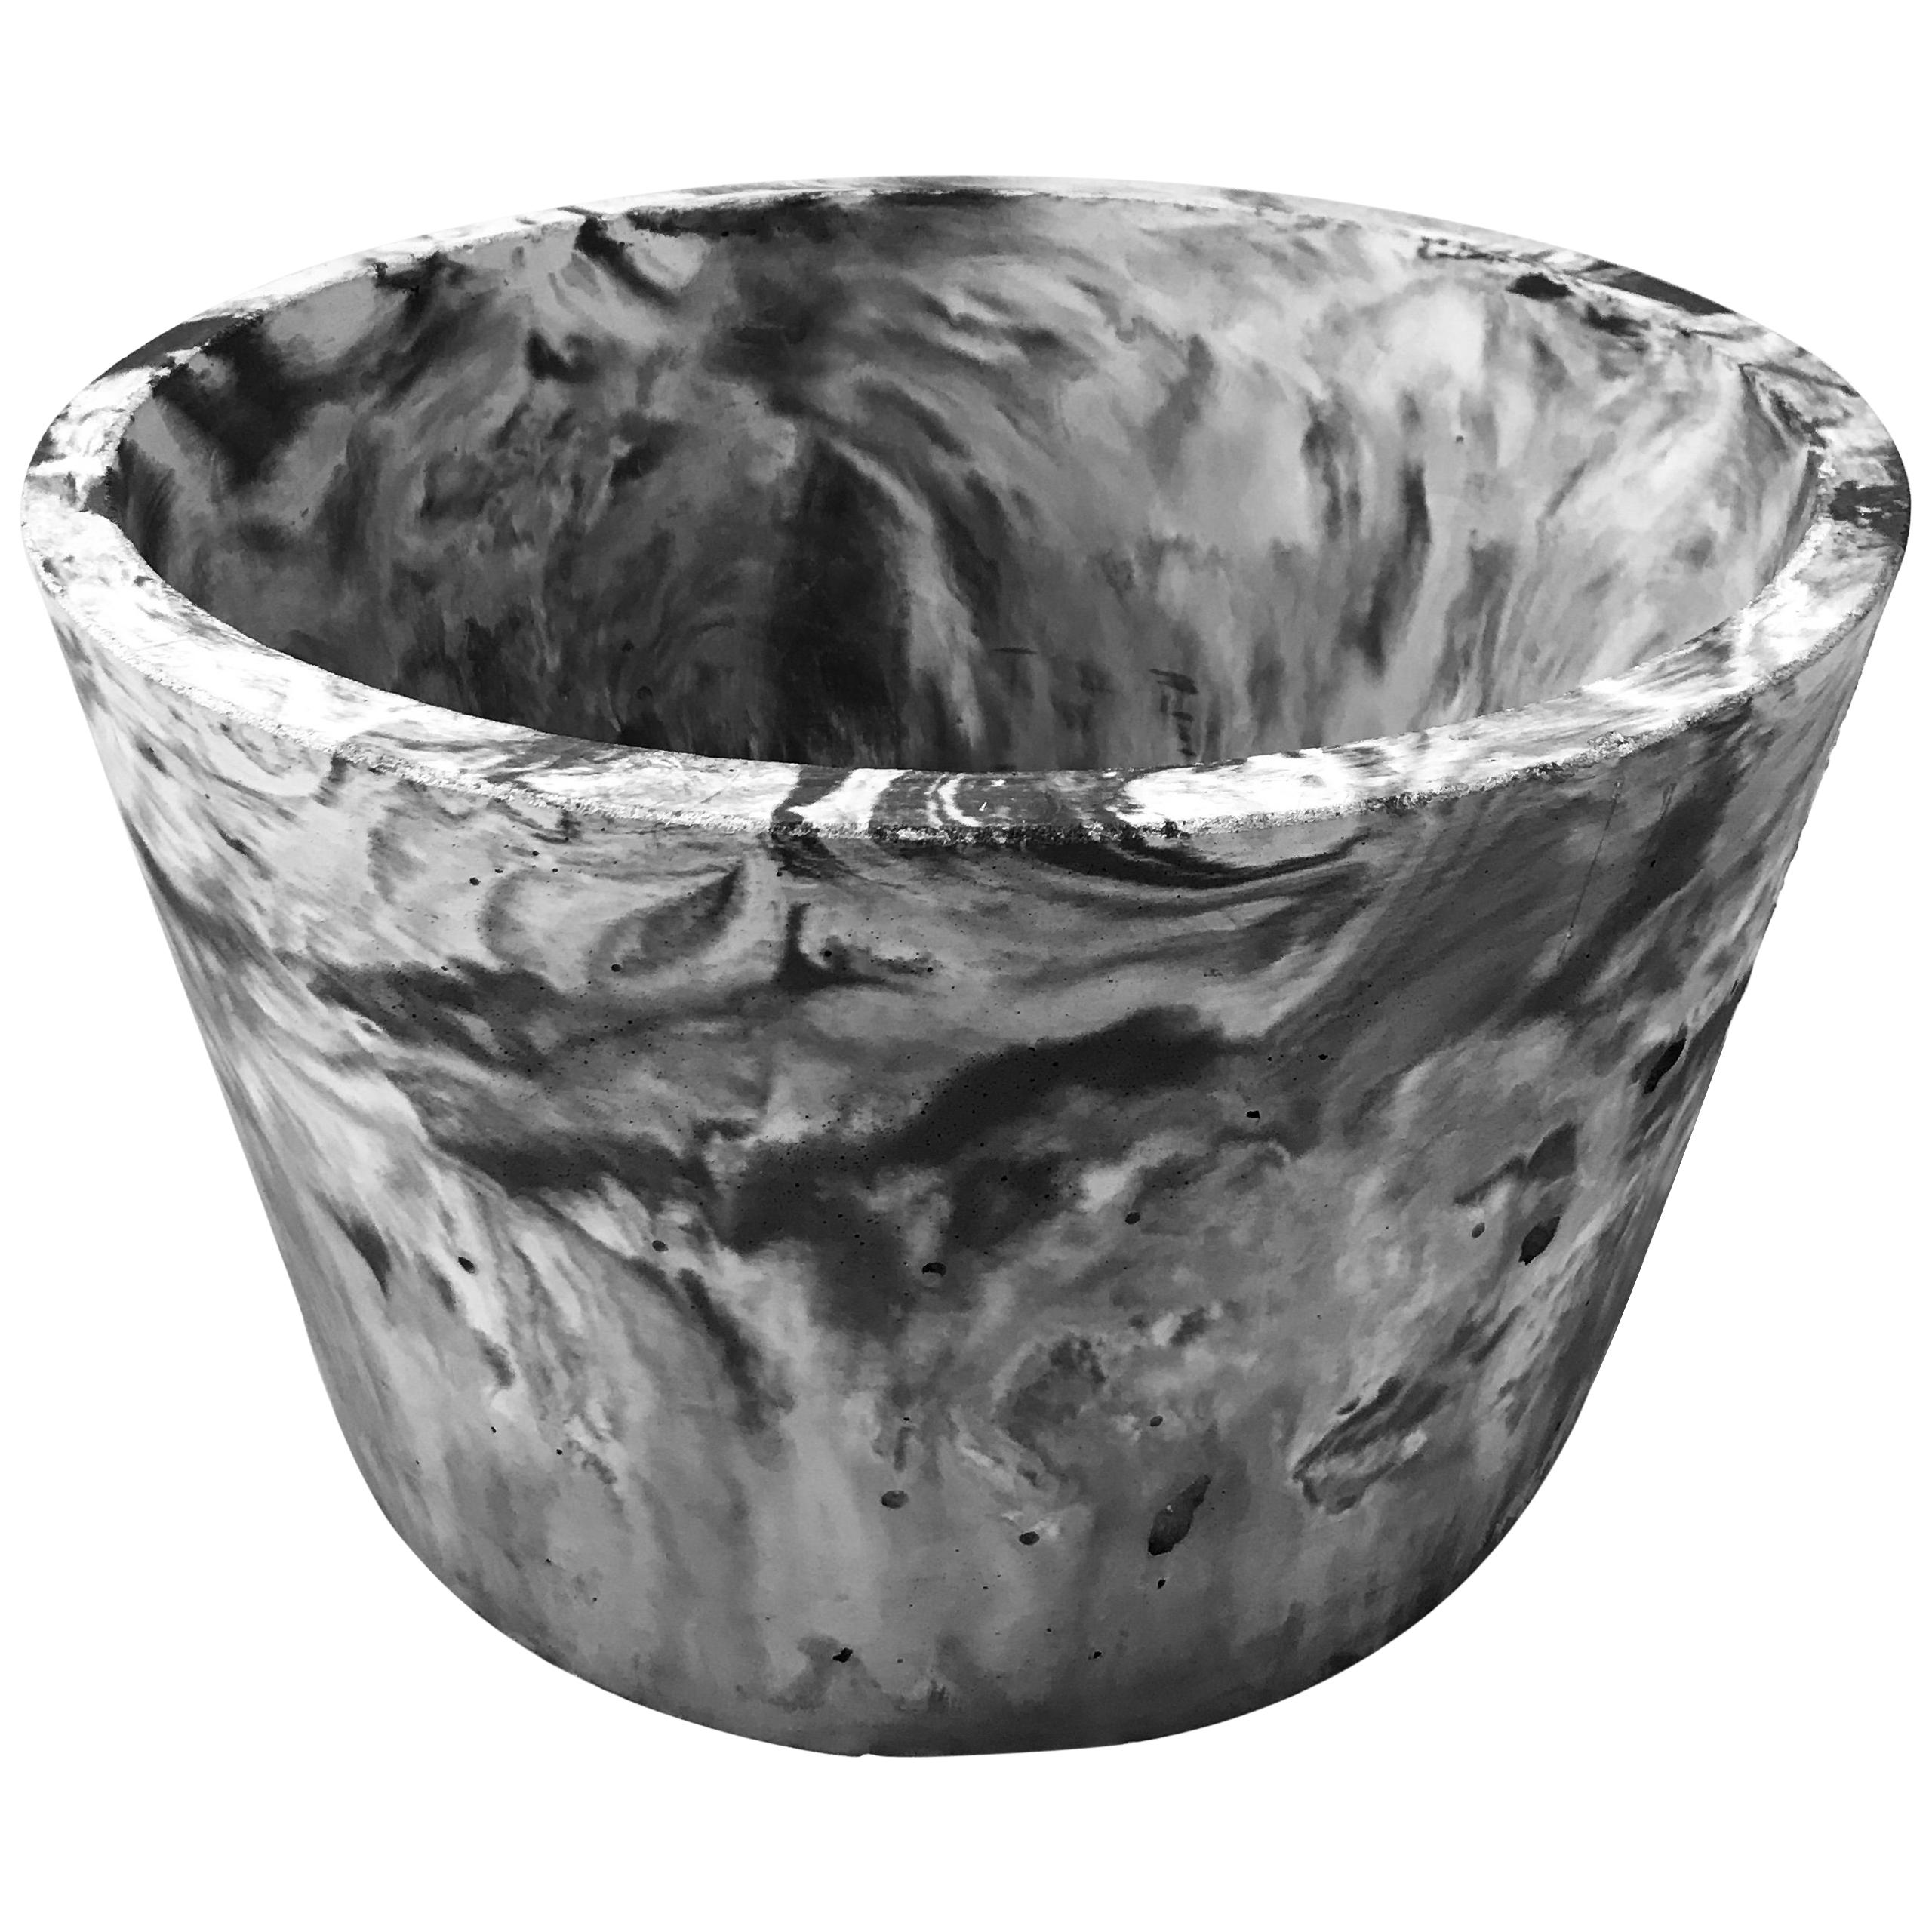 Concrete Planter 1.0 in Marbled Scagliola for Indoor or Outdoor by Mtharu